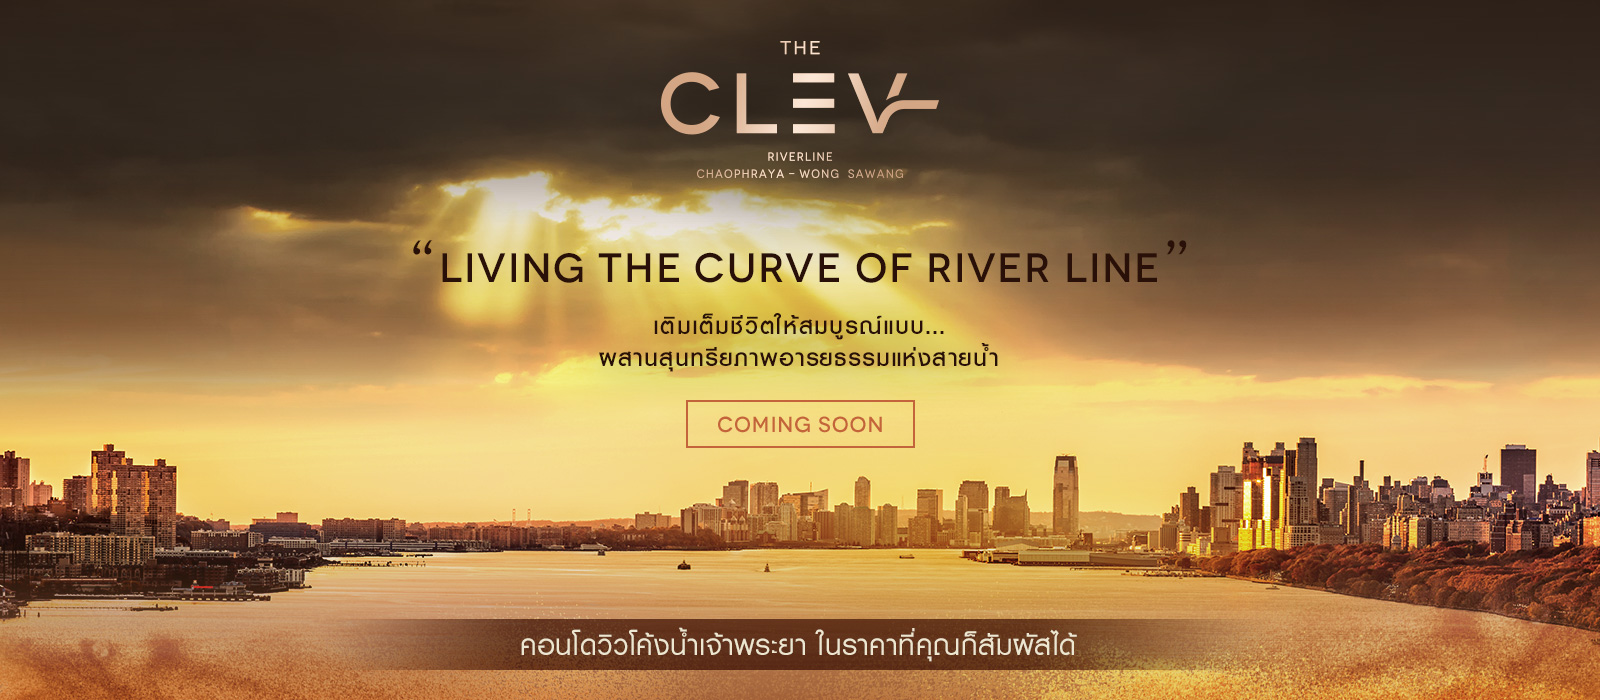 The CLEV Riverline Chaophraya-Wongsawang